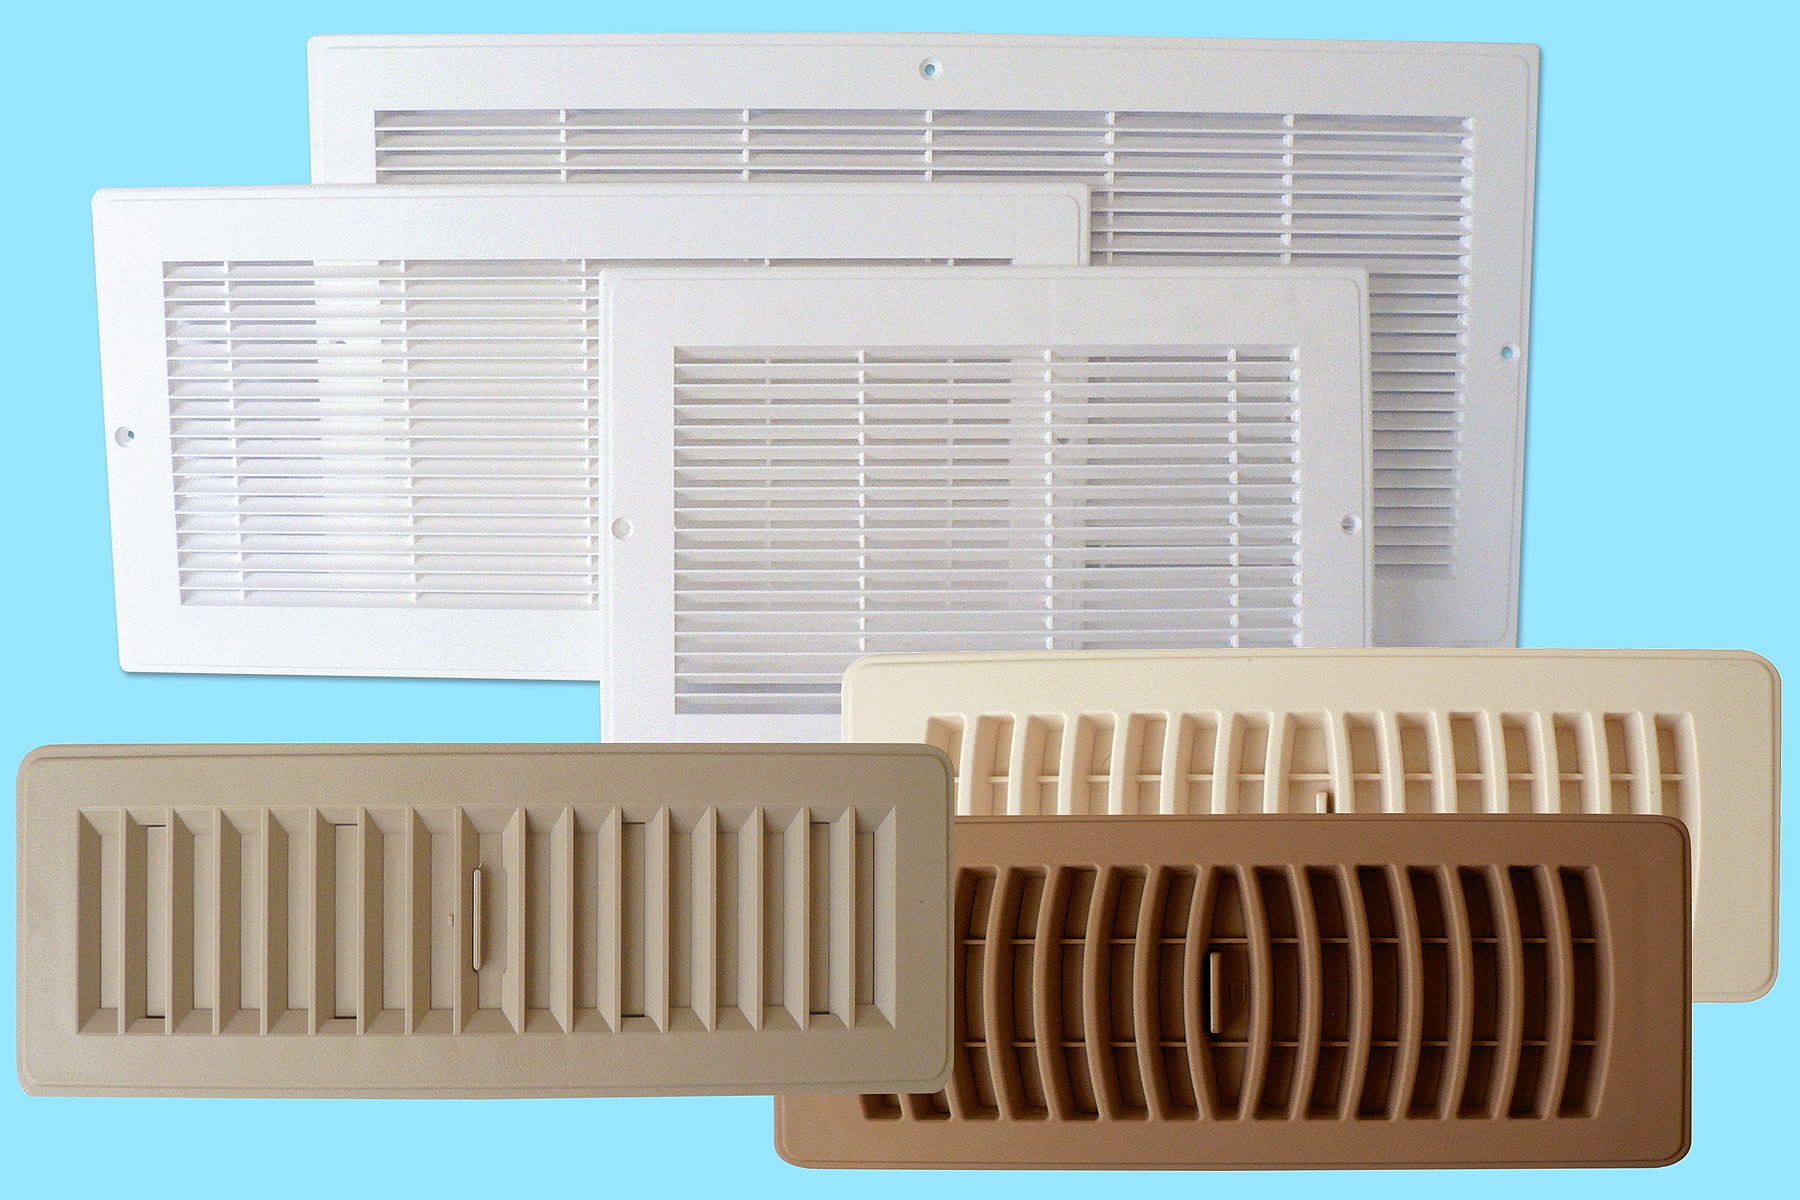 #059BC6 Outwater Introduces Its Series Of Heat Registers And  Most Effective 3265 Grilles And Registers pictures with 1800x1200 px on helpvideos.info - Air Conditioners, Air Coolers and more